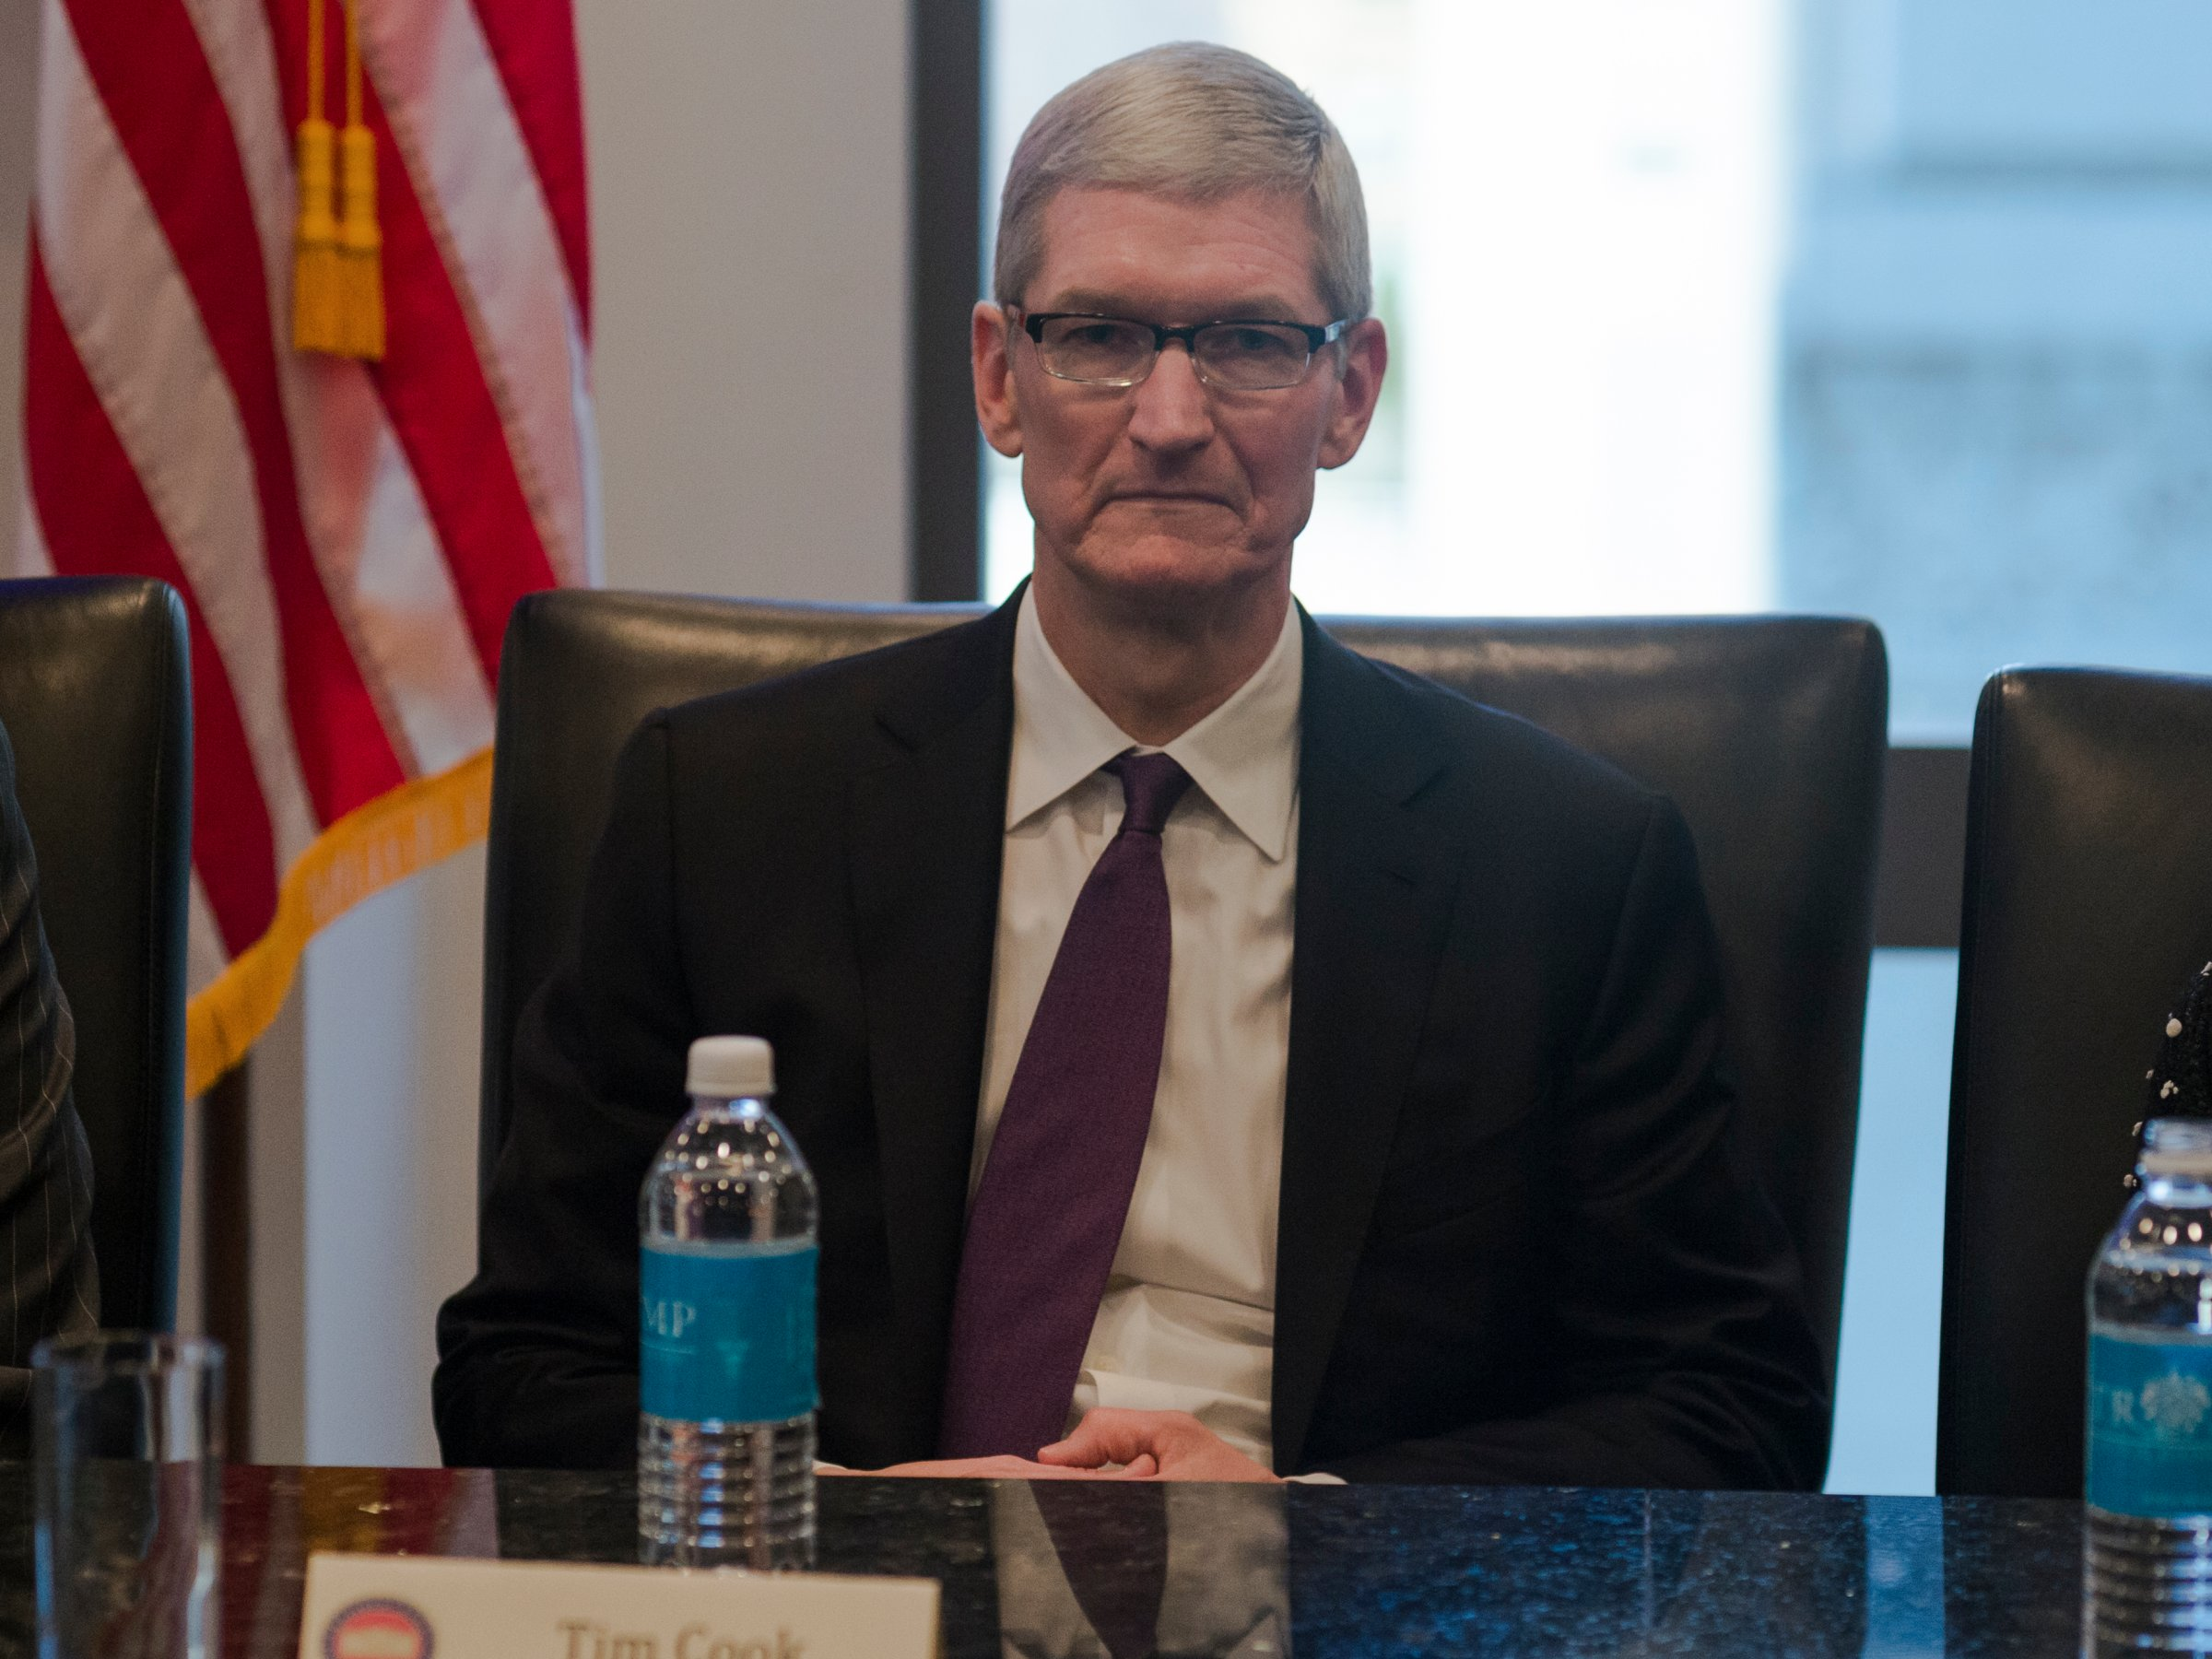 Apple CEO Tim Cook on meeting with Trump: 'You don't change things by just yelling'